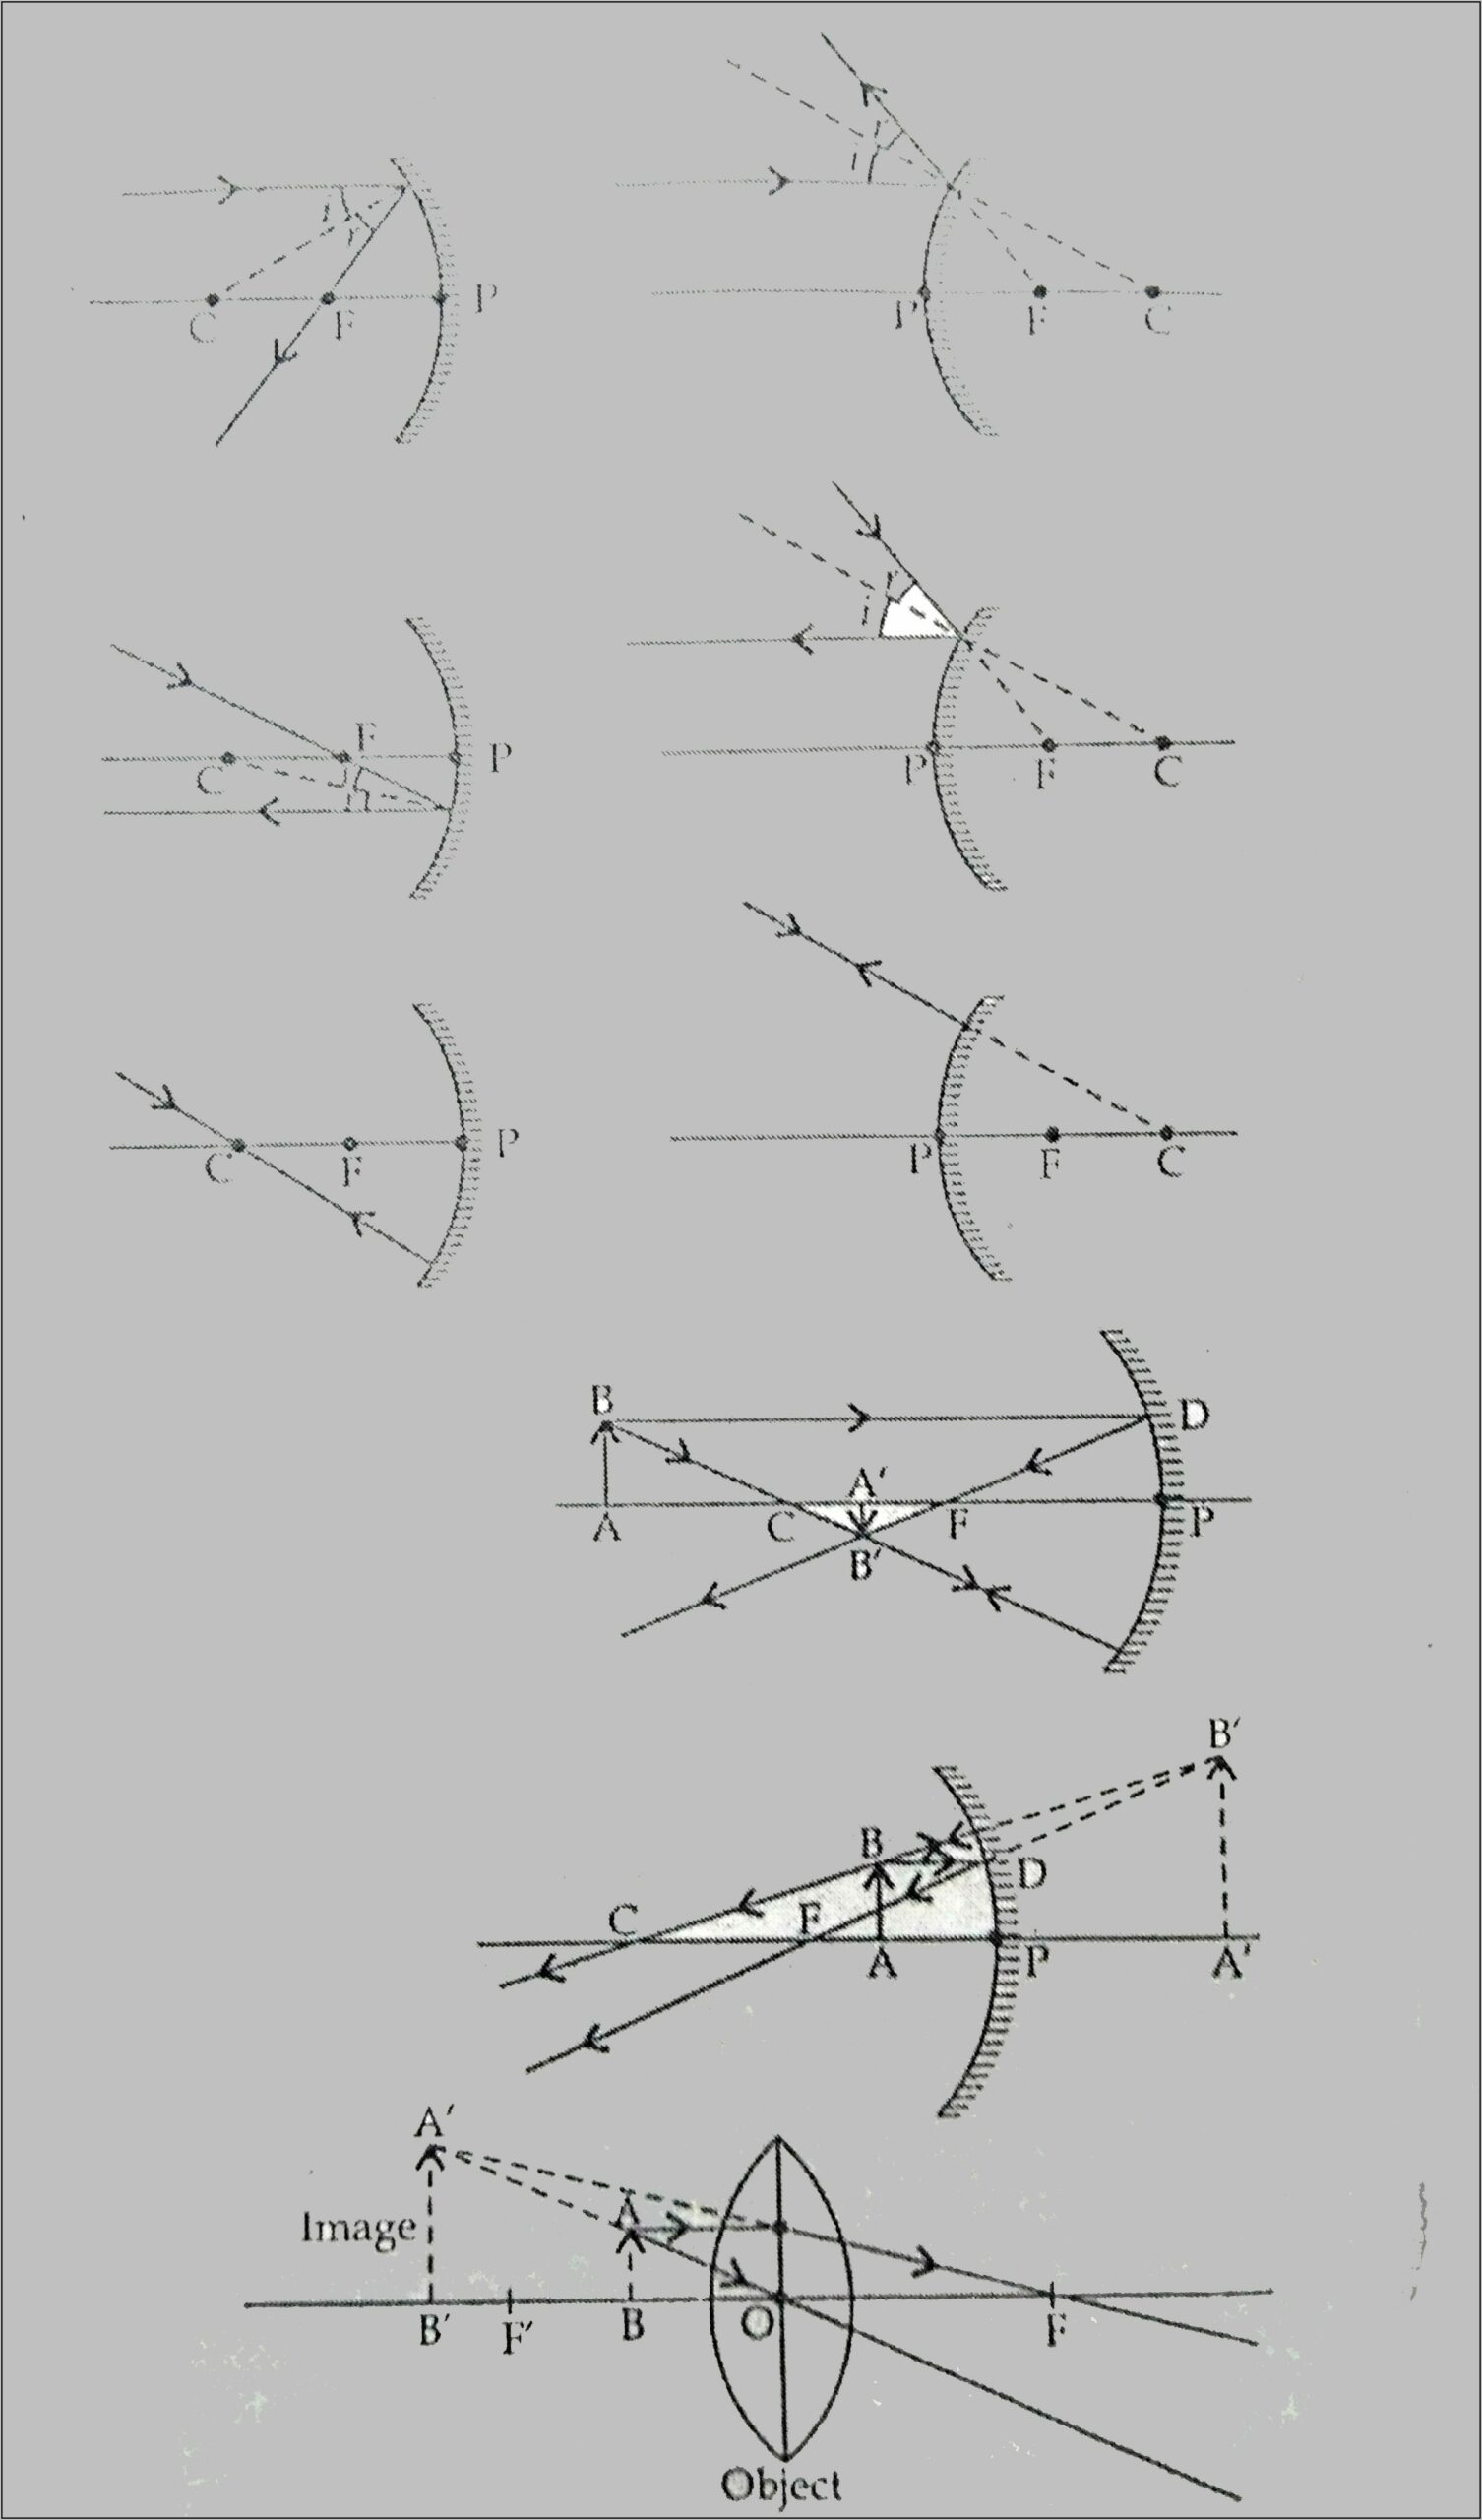 Ray Diagram Of Convex Mirror Object At F